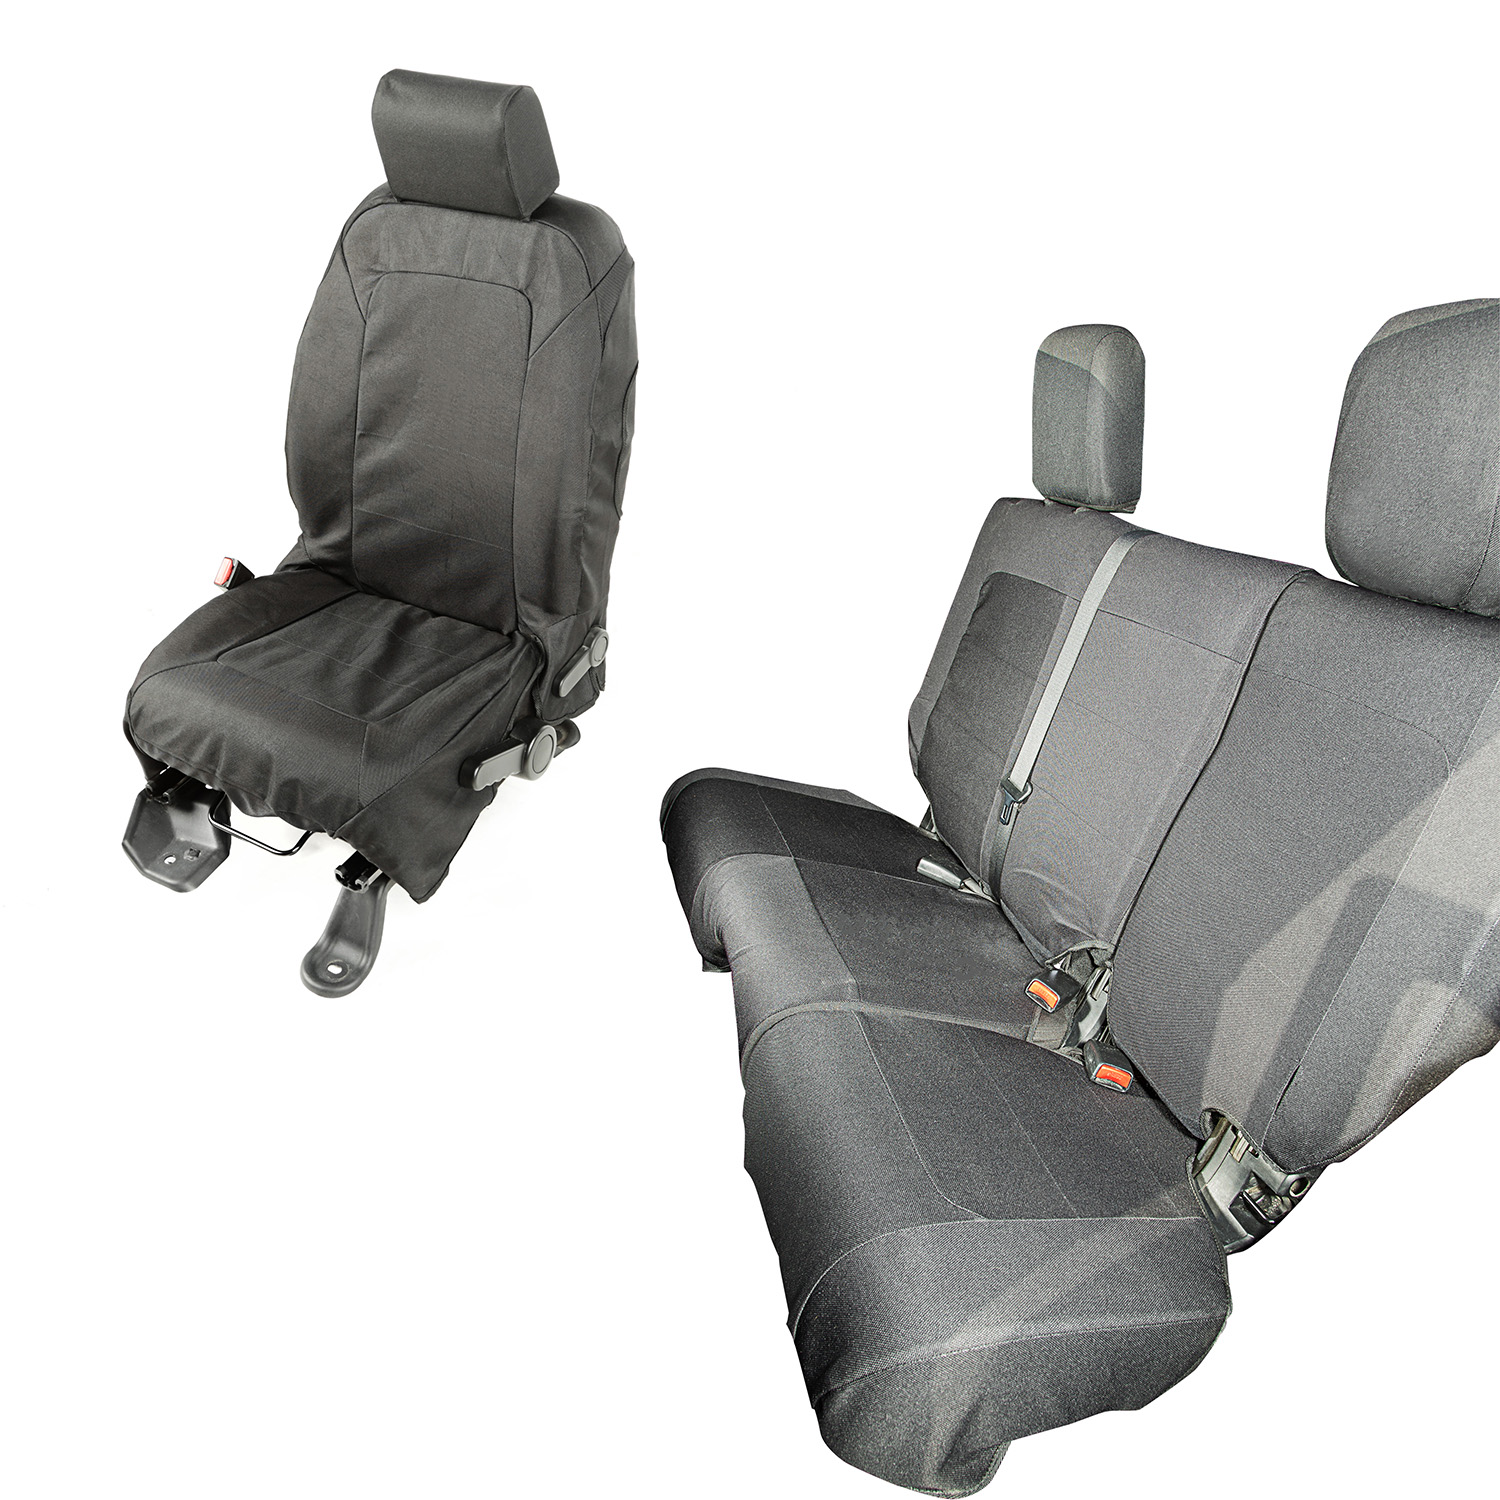 Rugged Ridge Elite Ballistic Seat Cover Set - JK 4DR